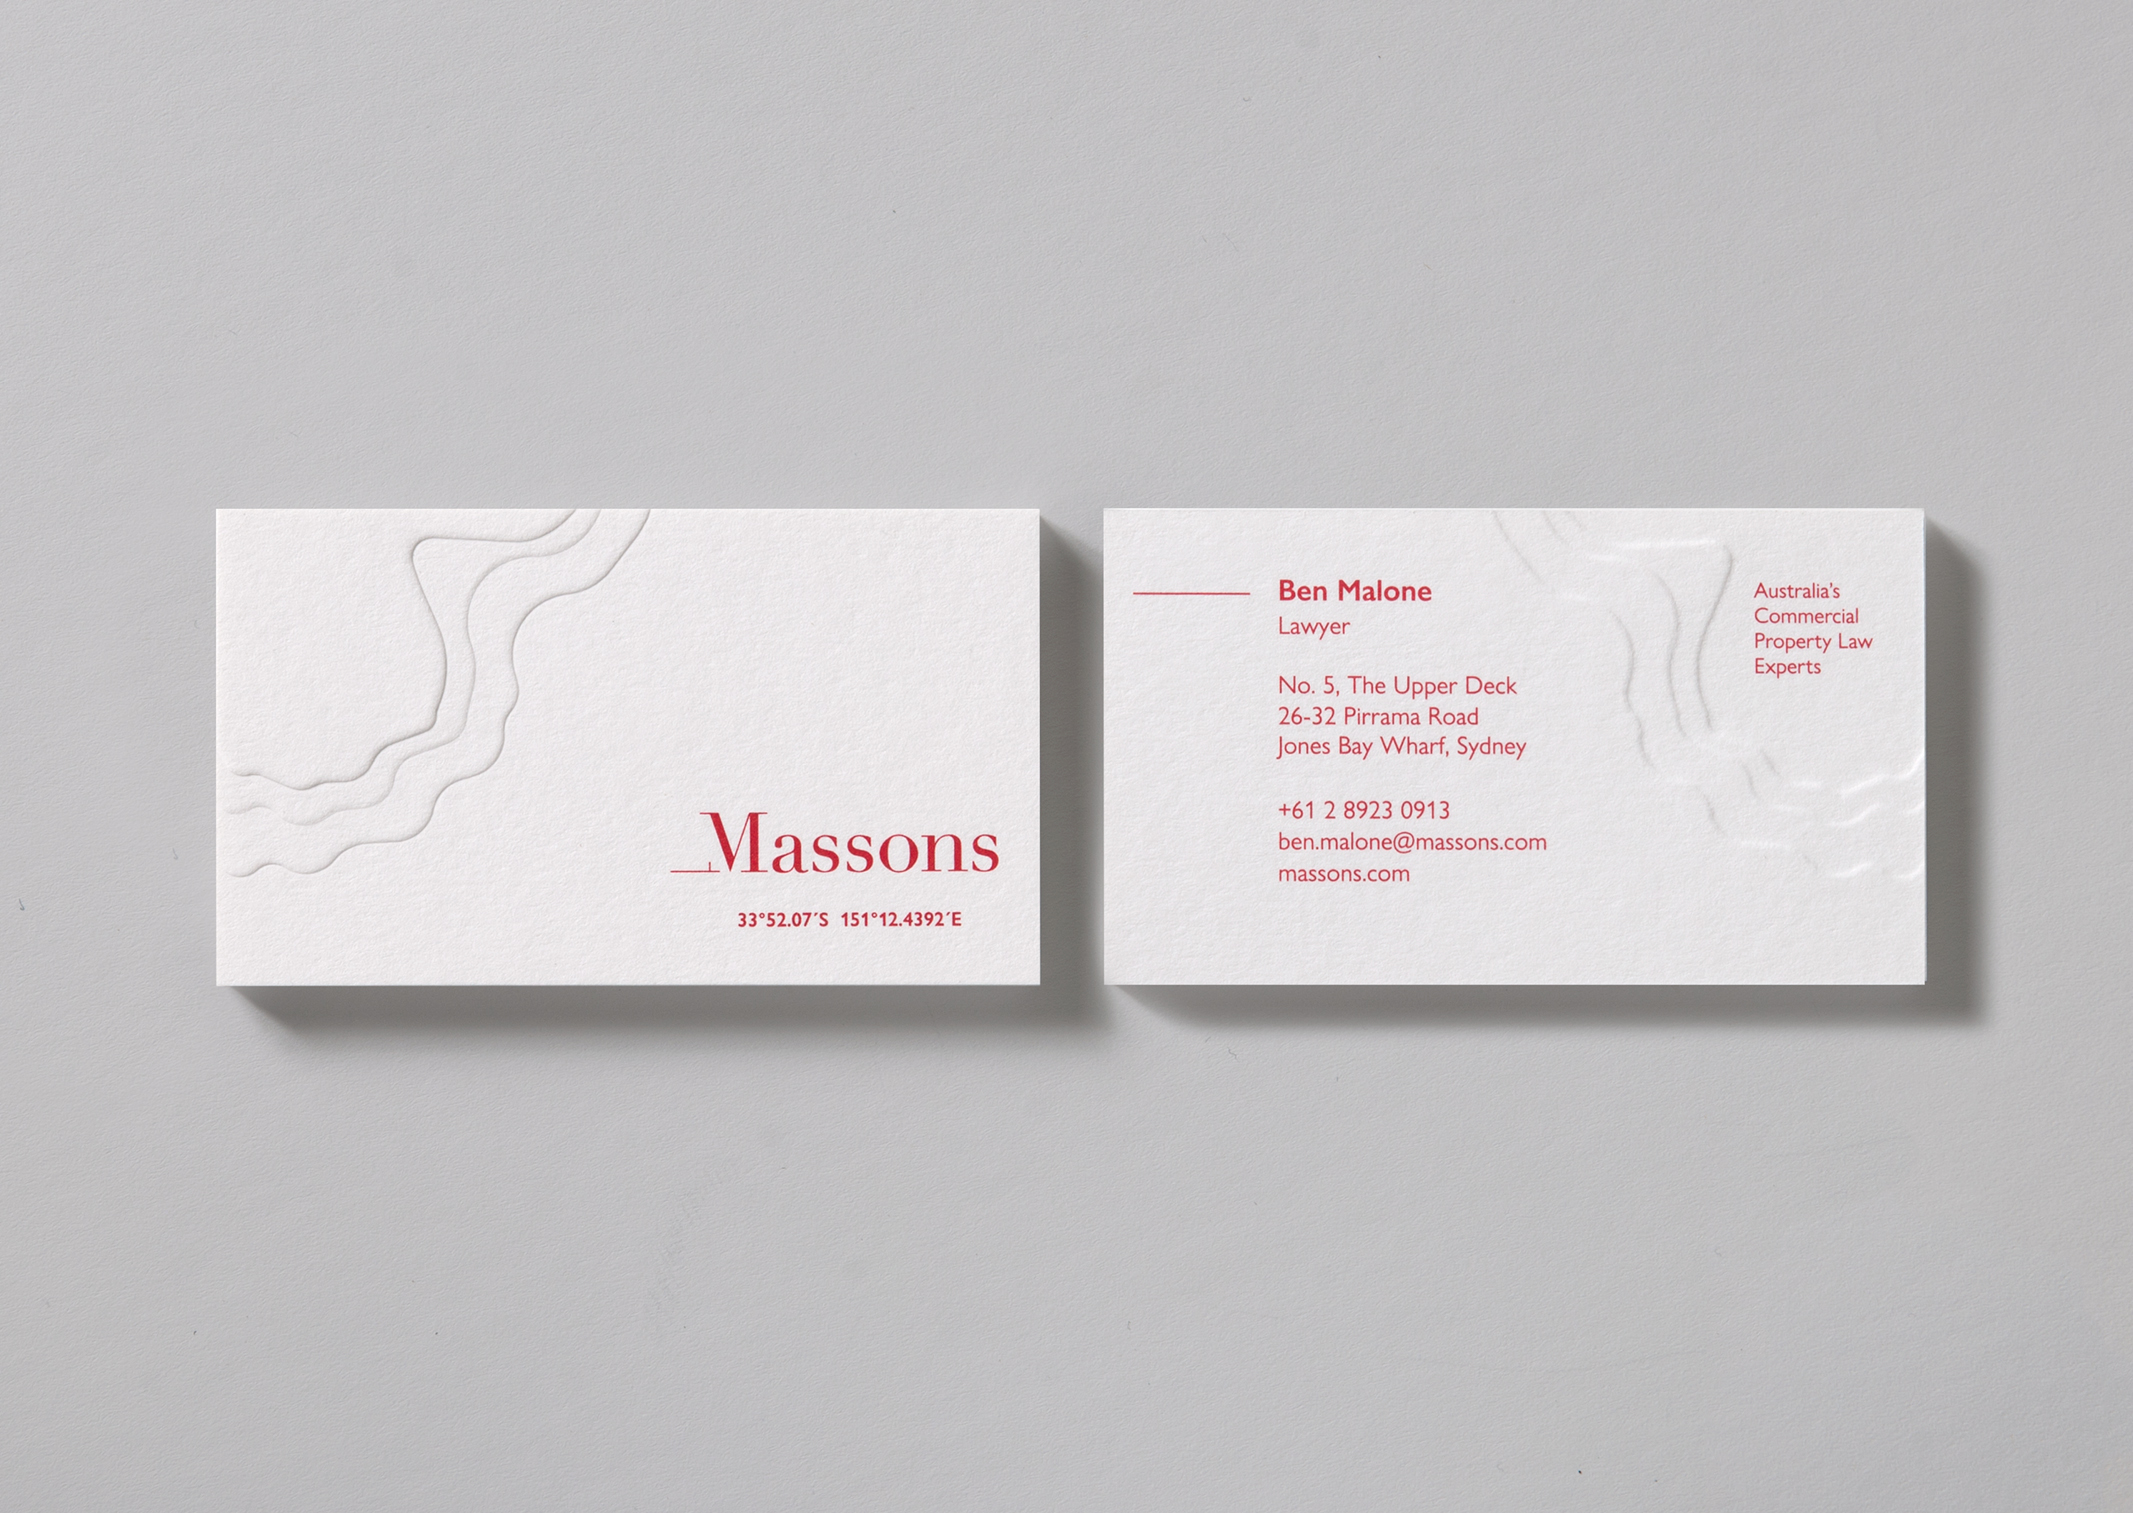 Massons Law business cards feature a deep topographic map emboss and location coordinates